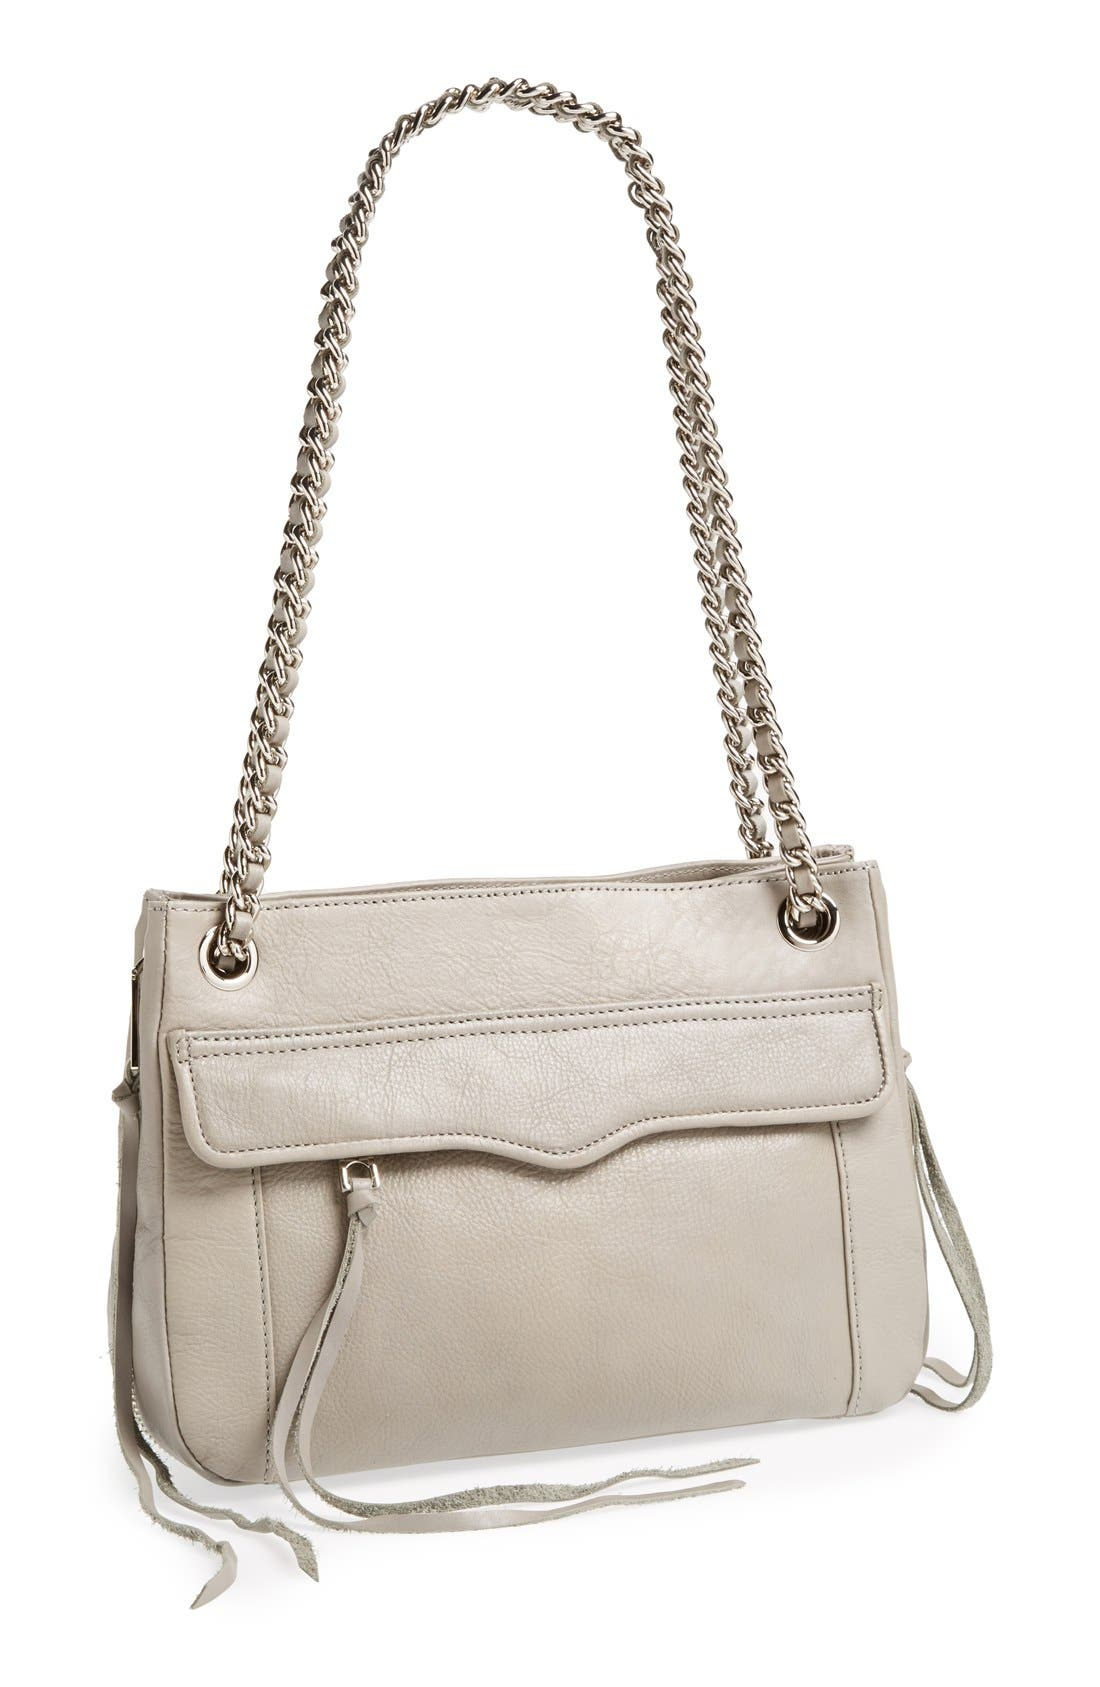 Alternate Image 1 Selected - Rebecca Minkoff 'Swing' Double Chain Leather Shoulder Bag